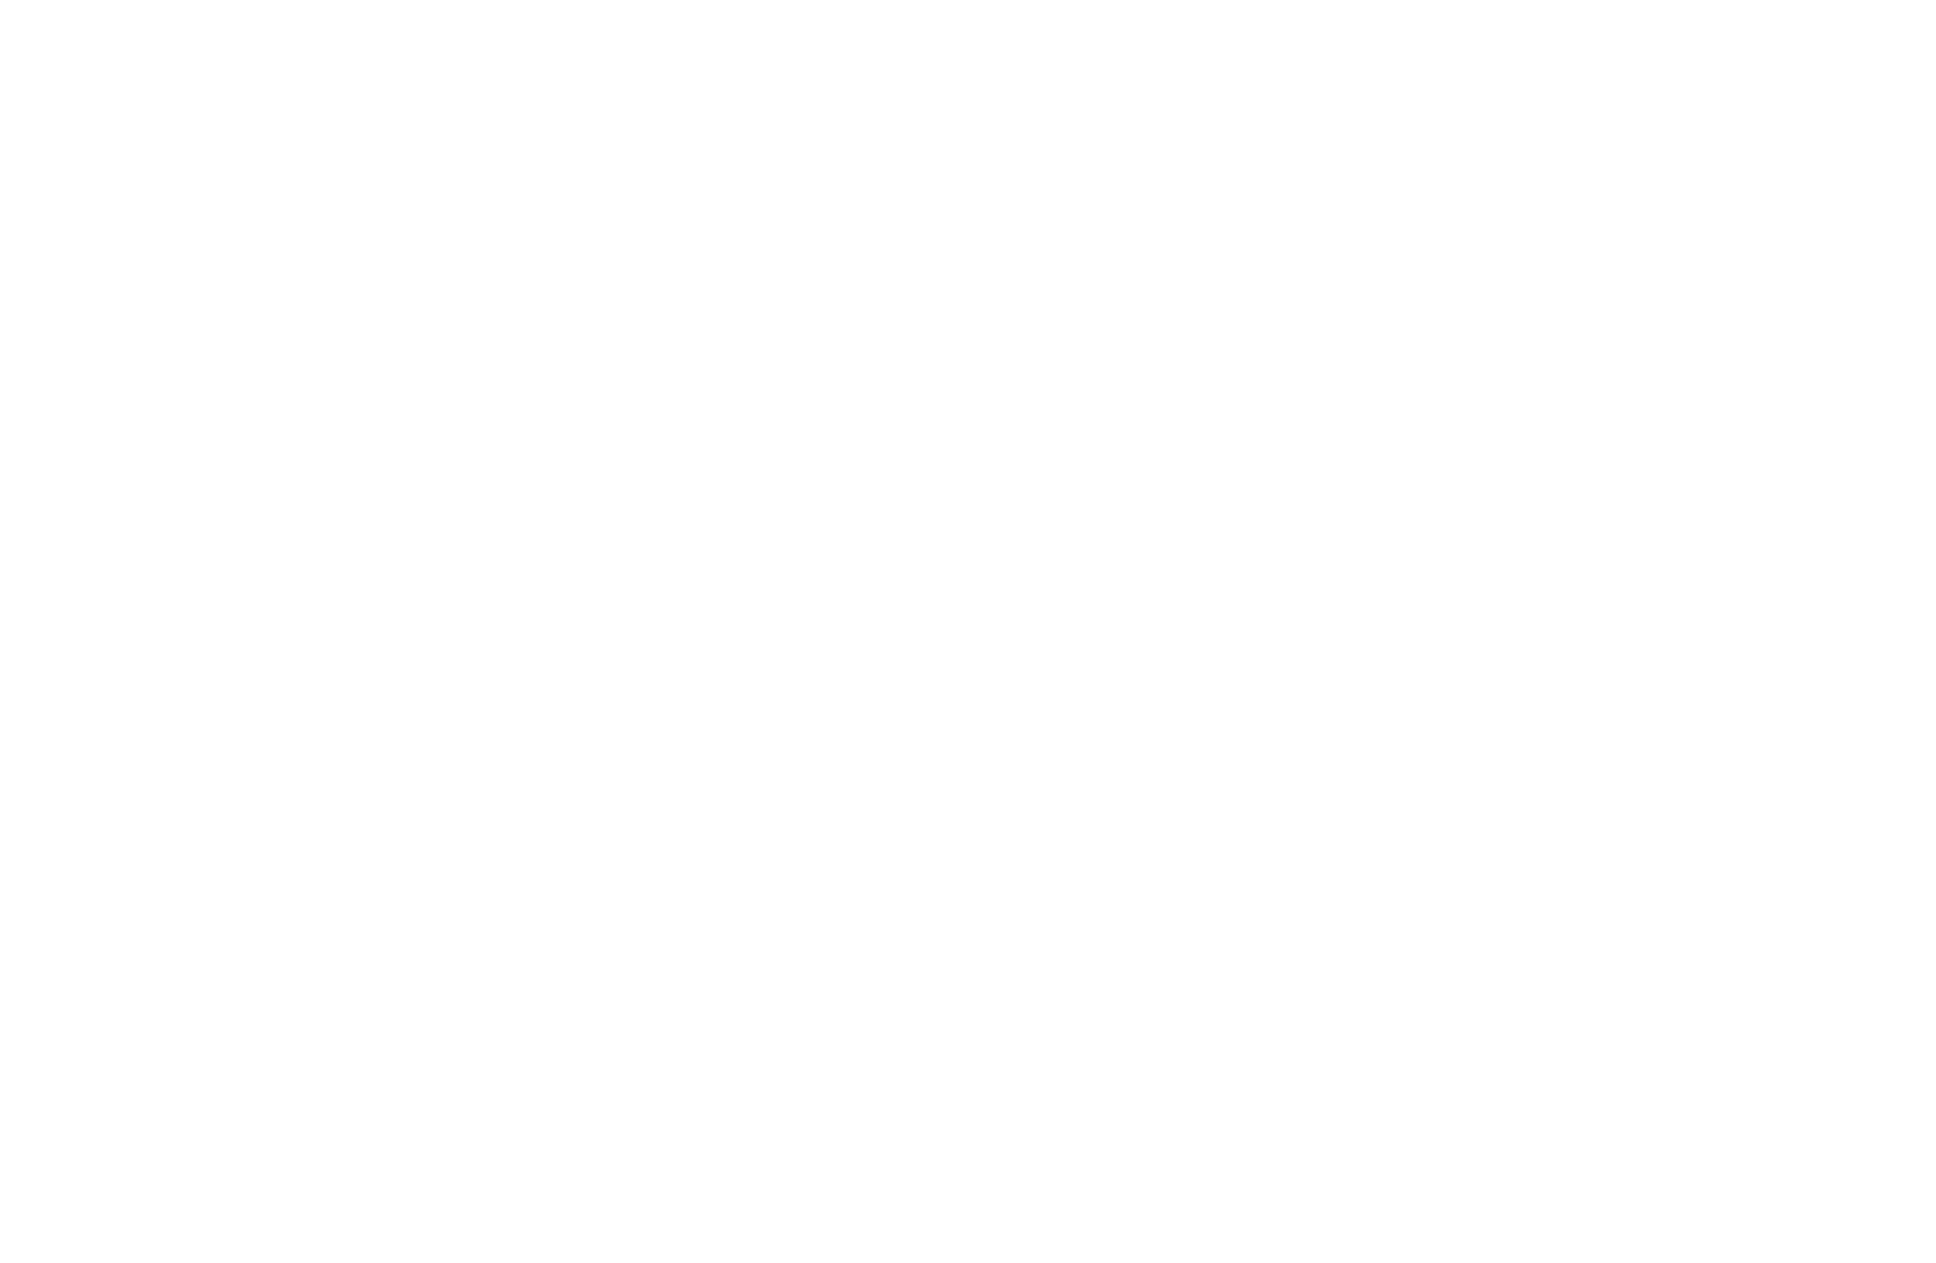 Bowery Film Festival Best Documentary Spring 2019